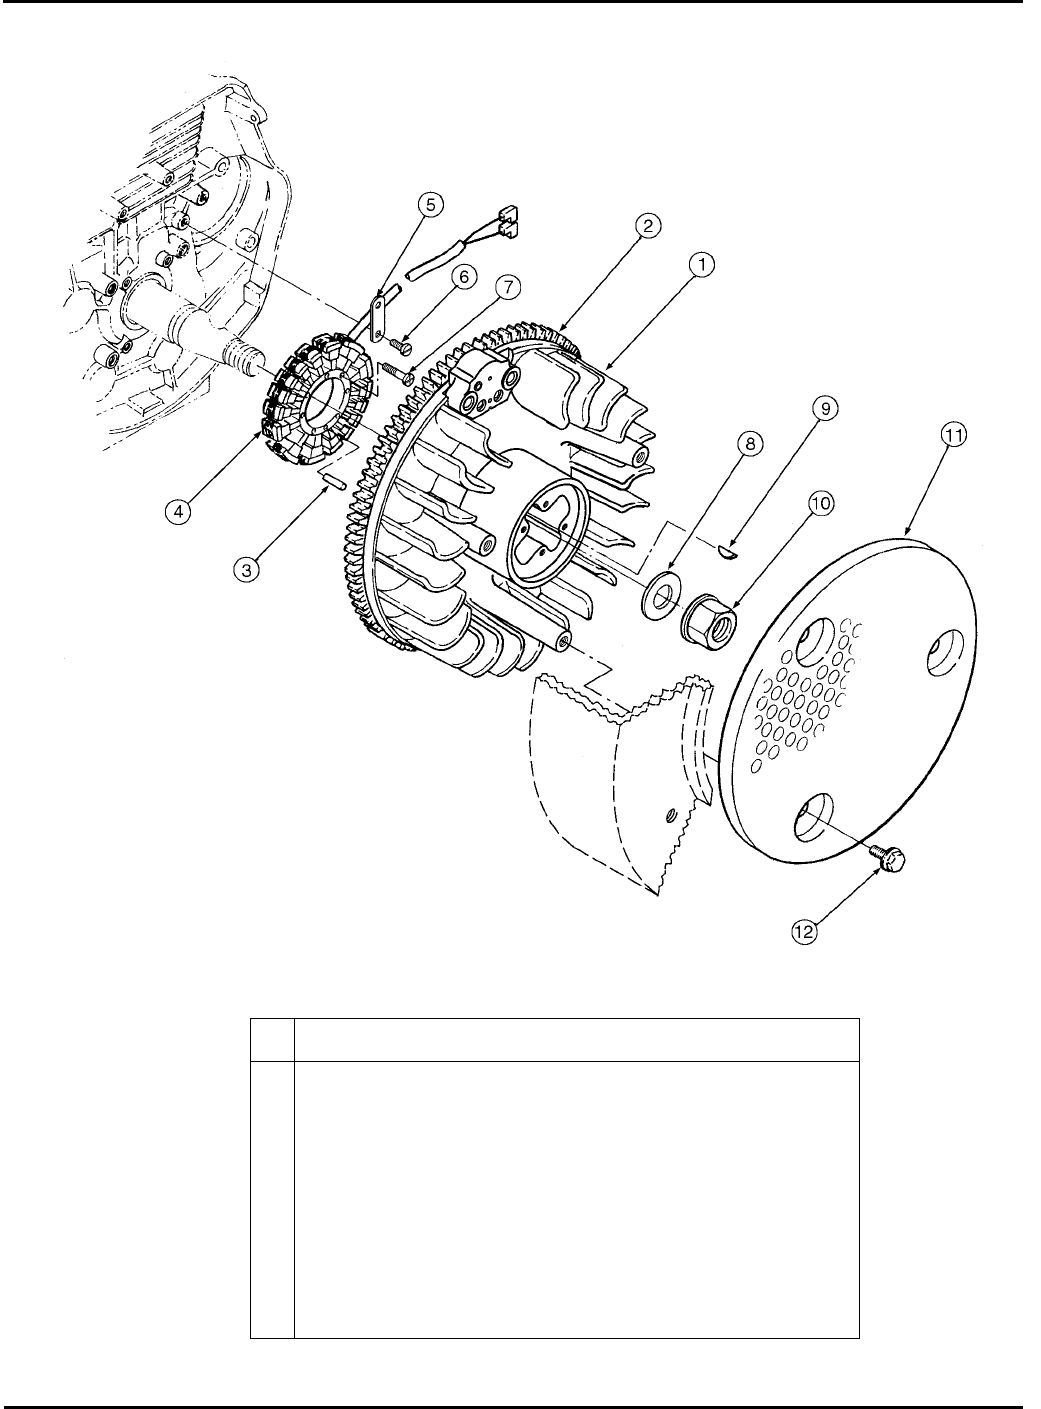 Page 27 of Cub Cadet Lawn Mower 2146 User Guide